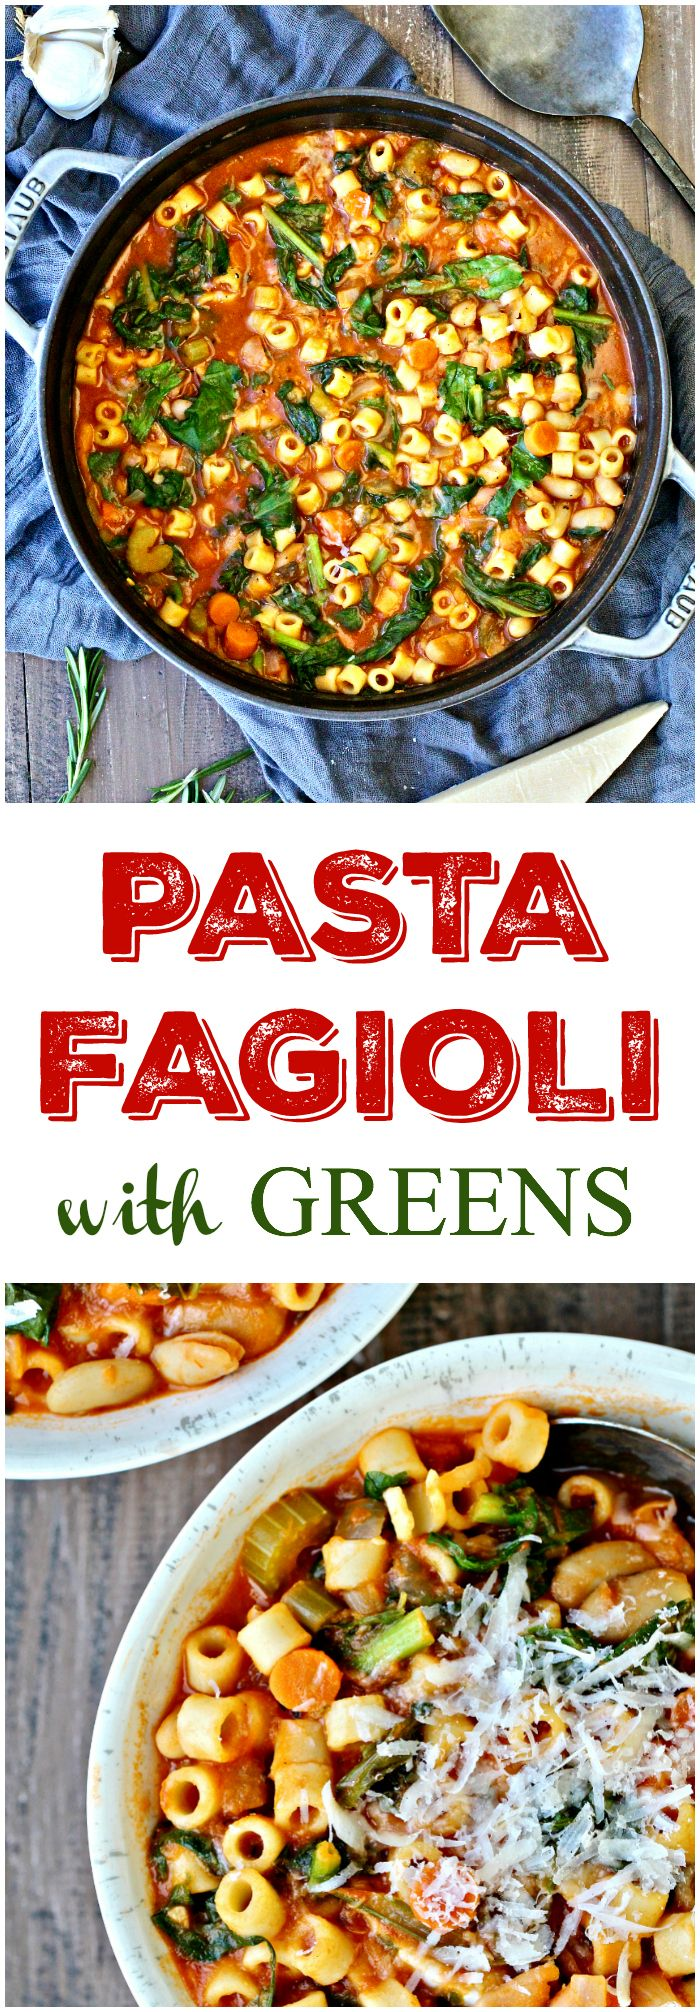 This Pasta Fagioli with Greens is a comforting, stick-to-your-ribs soup that's satisfying and full of flavor!